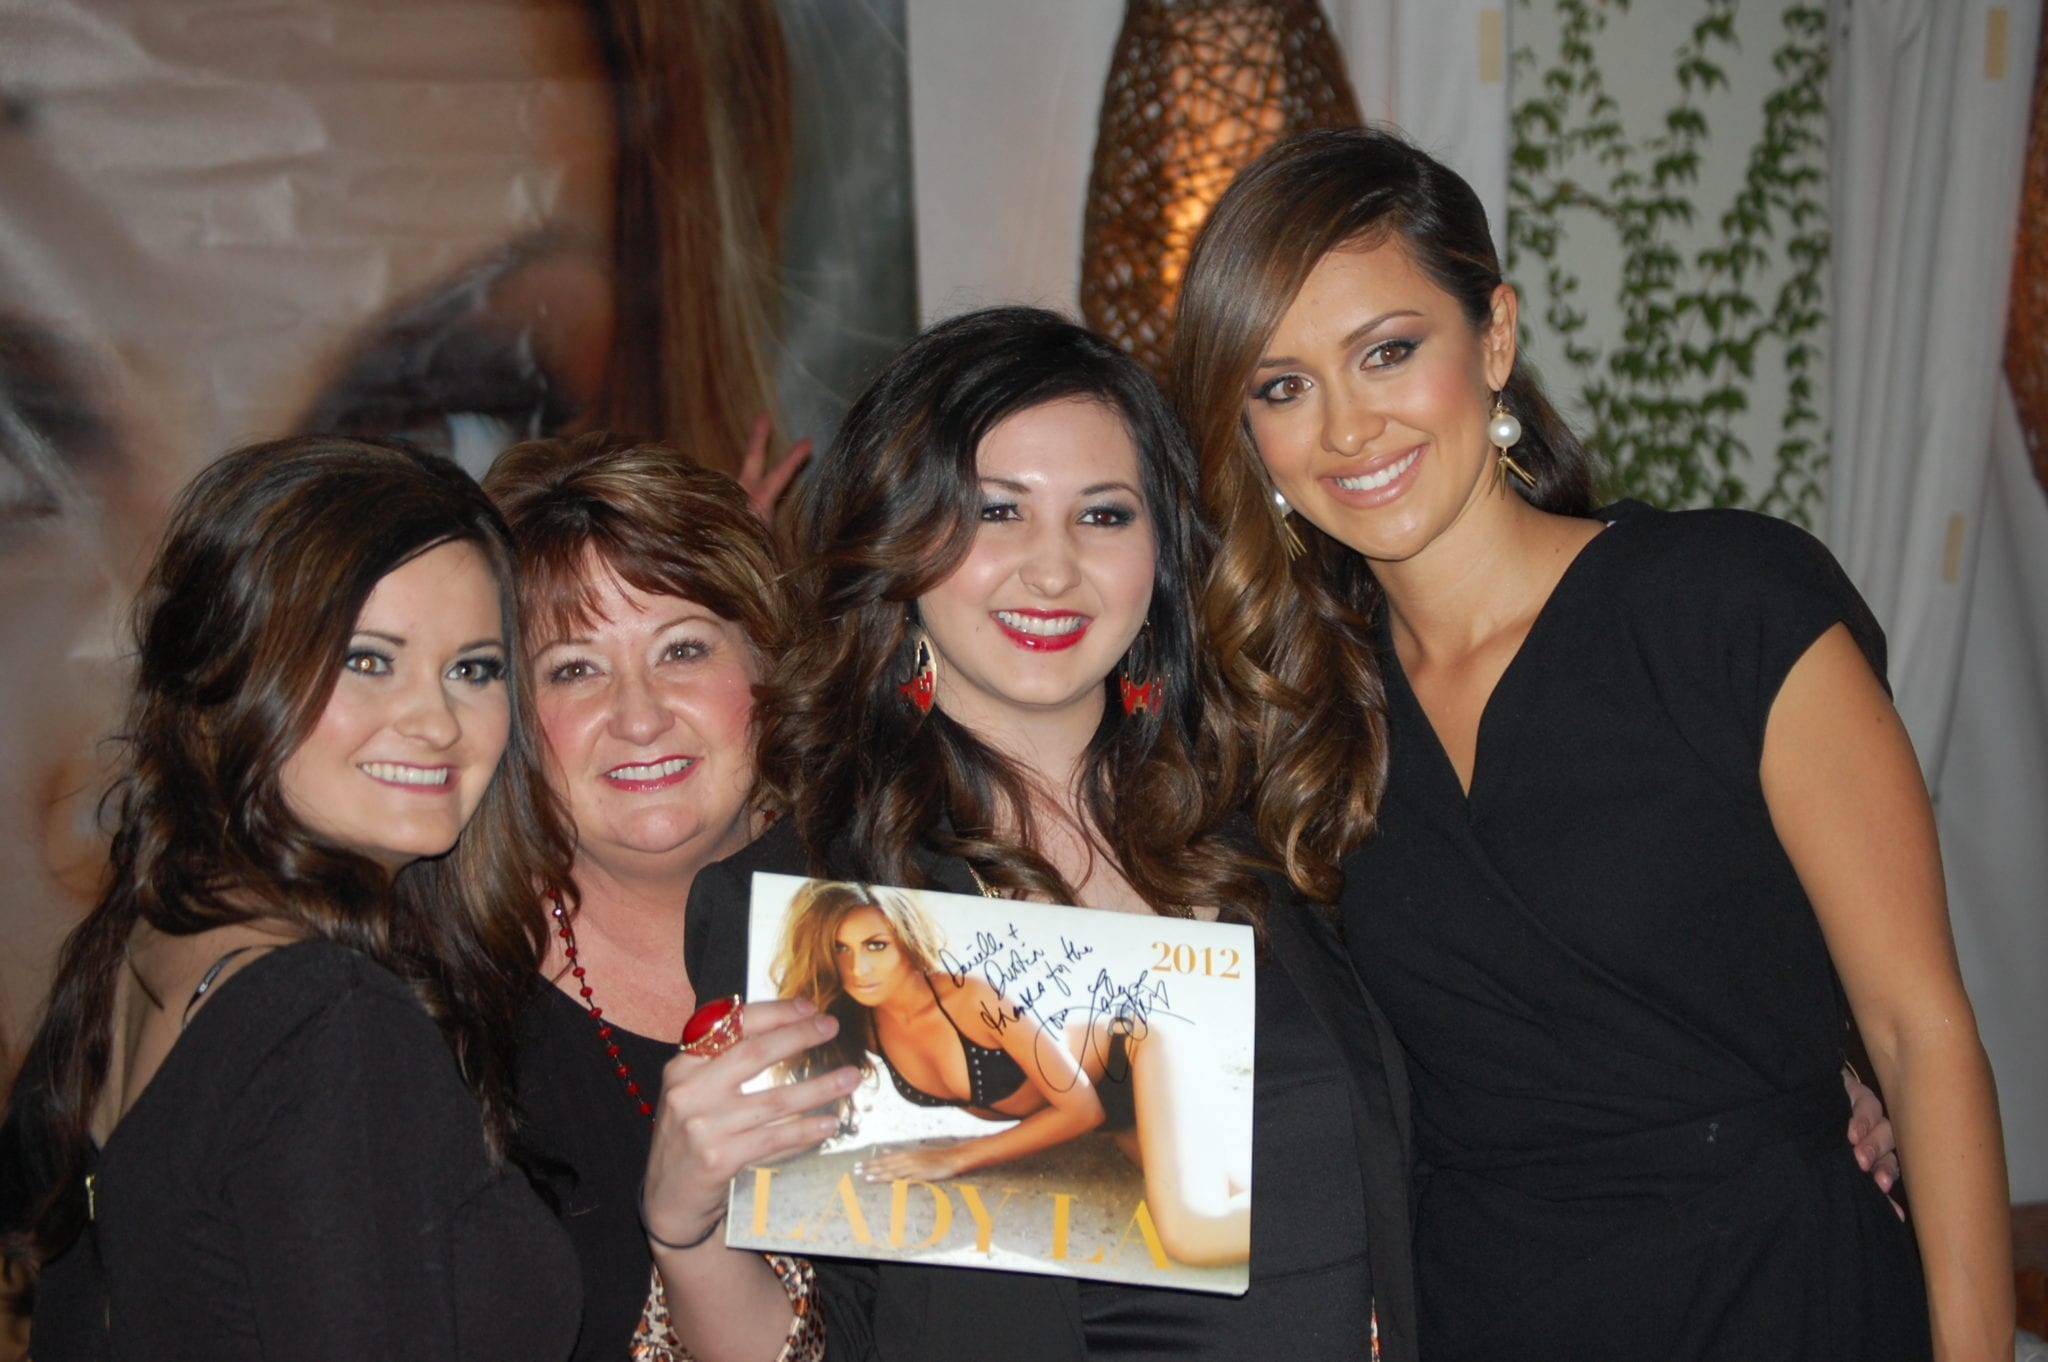 Lady La's Calendar shoot raised money for an autism charity, as well as for Breast Cancer.